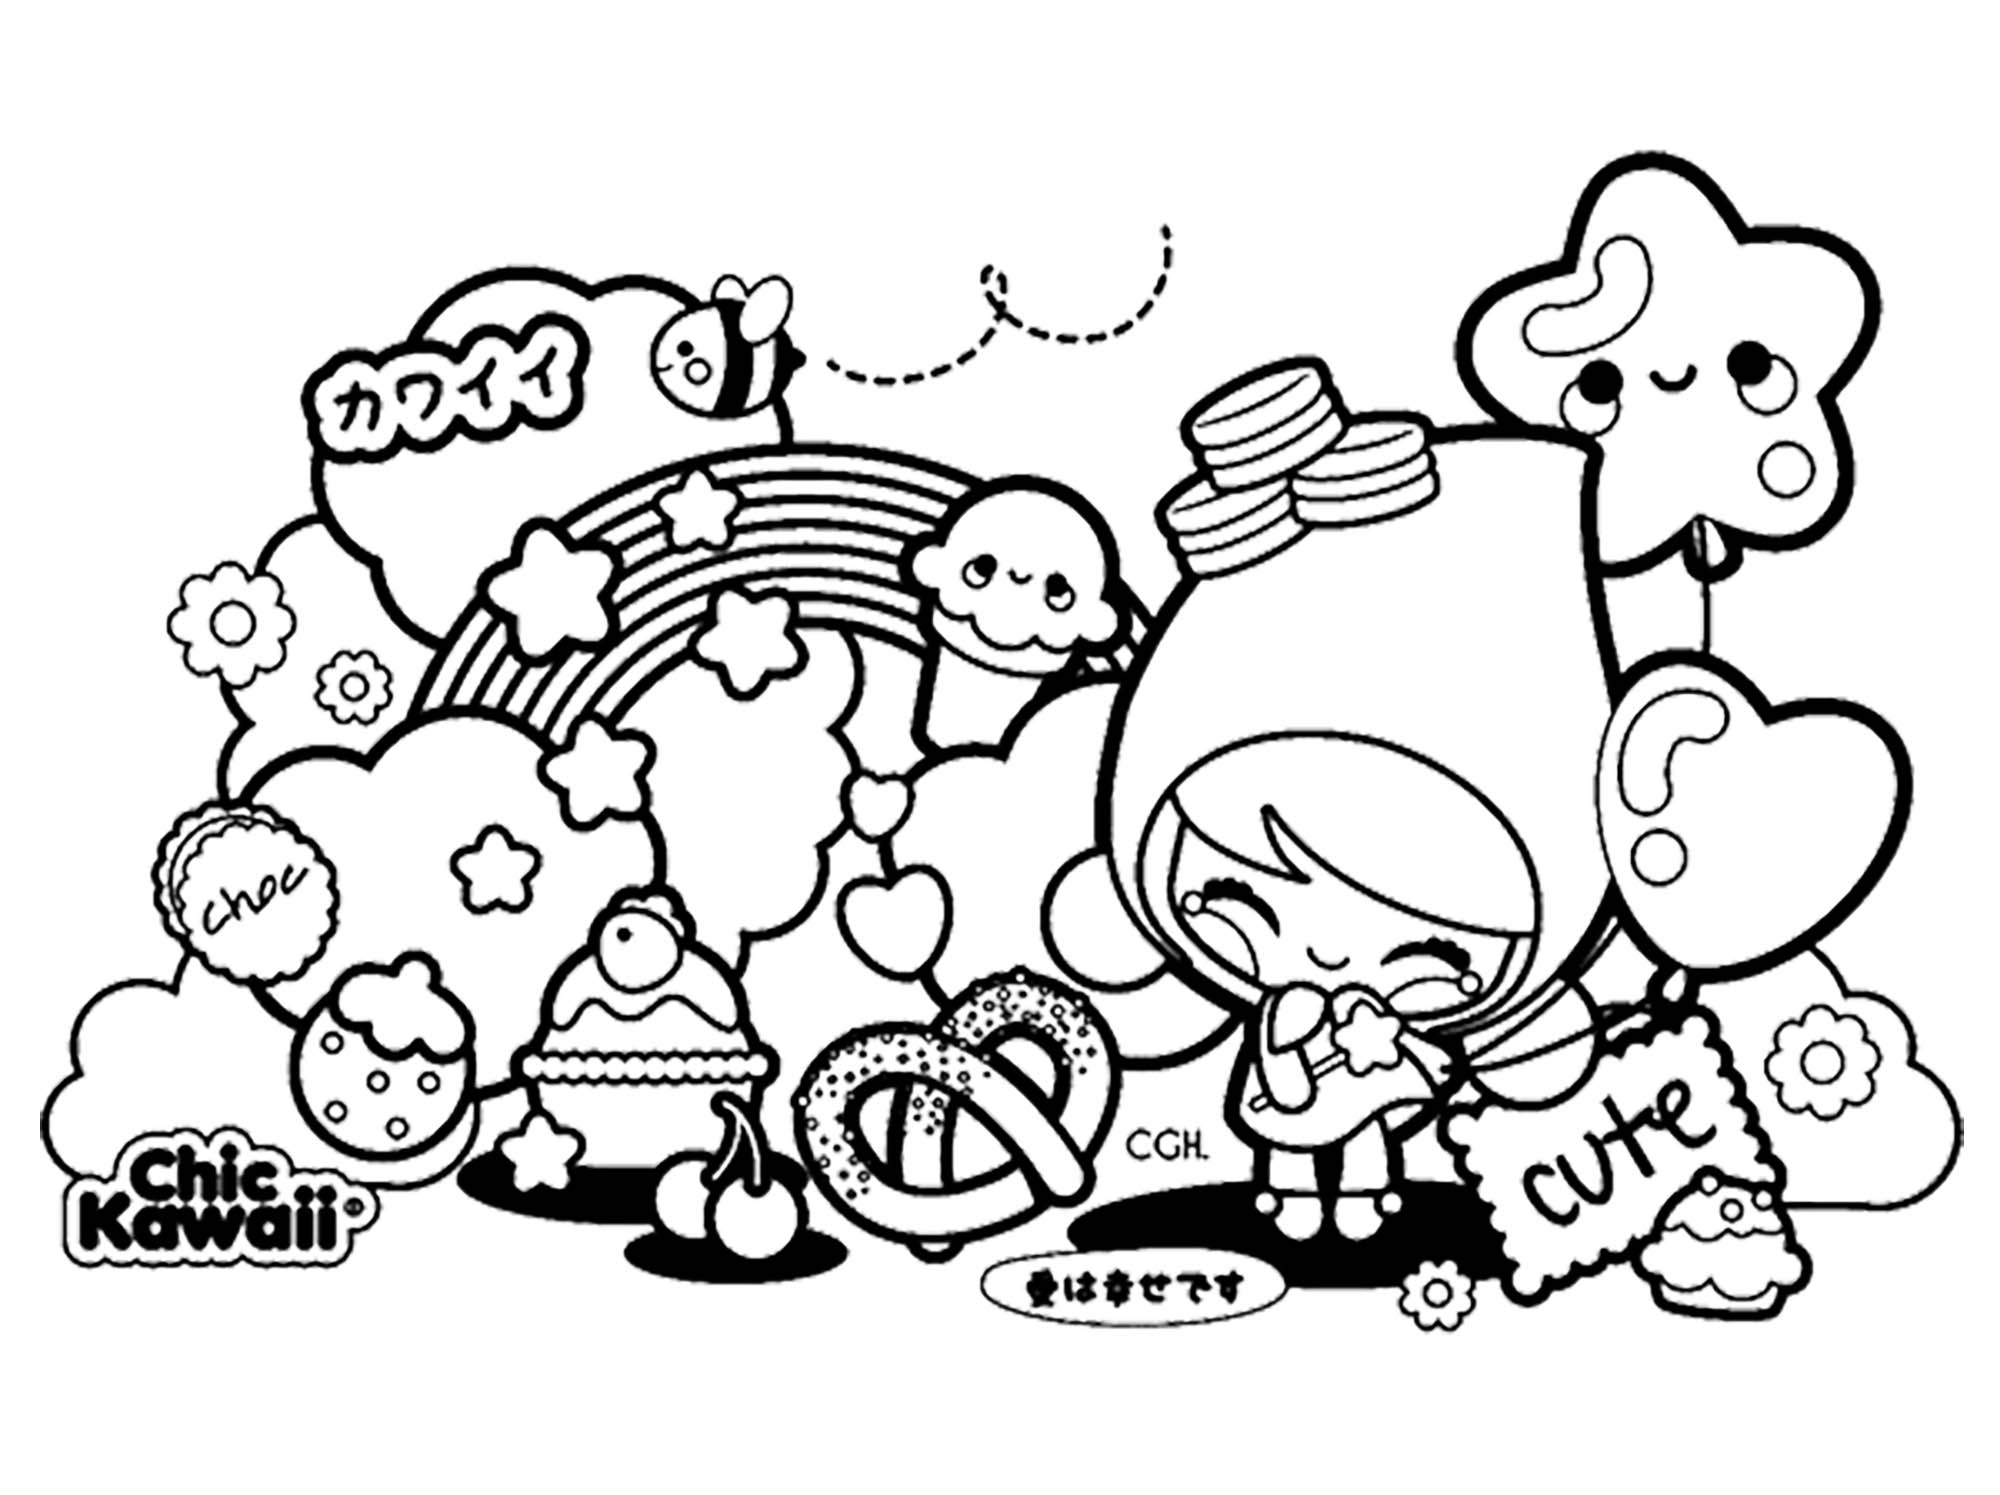 Chic Kawaii Mignonnes Creatures Coloriage Kawaii